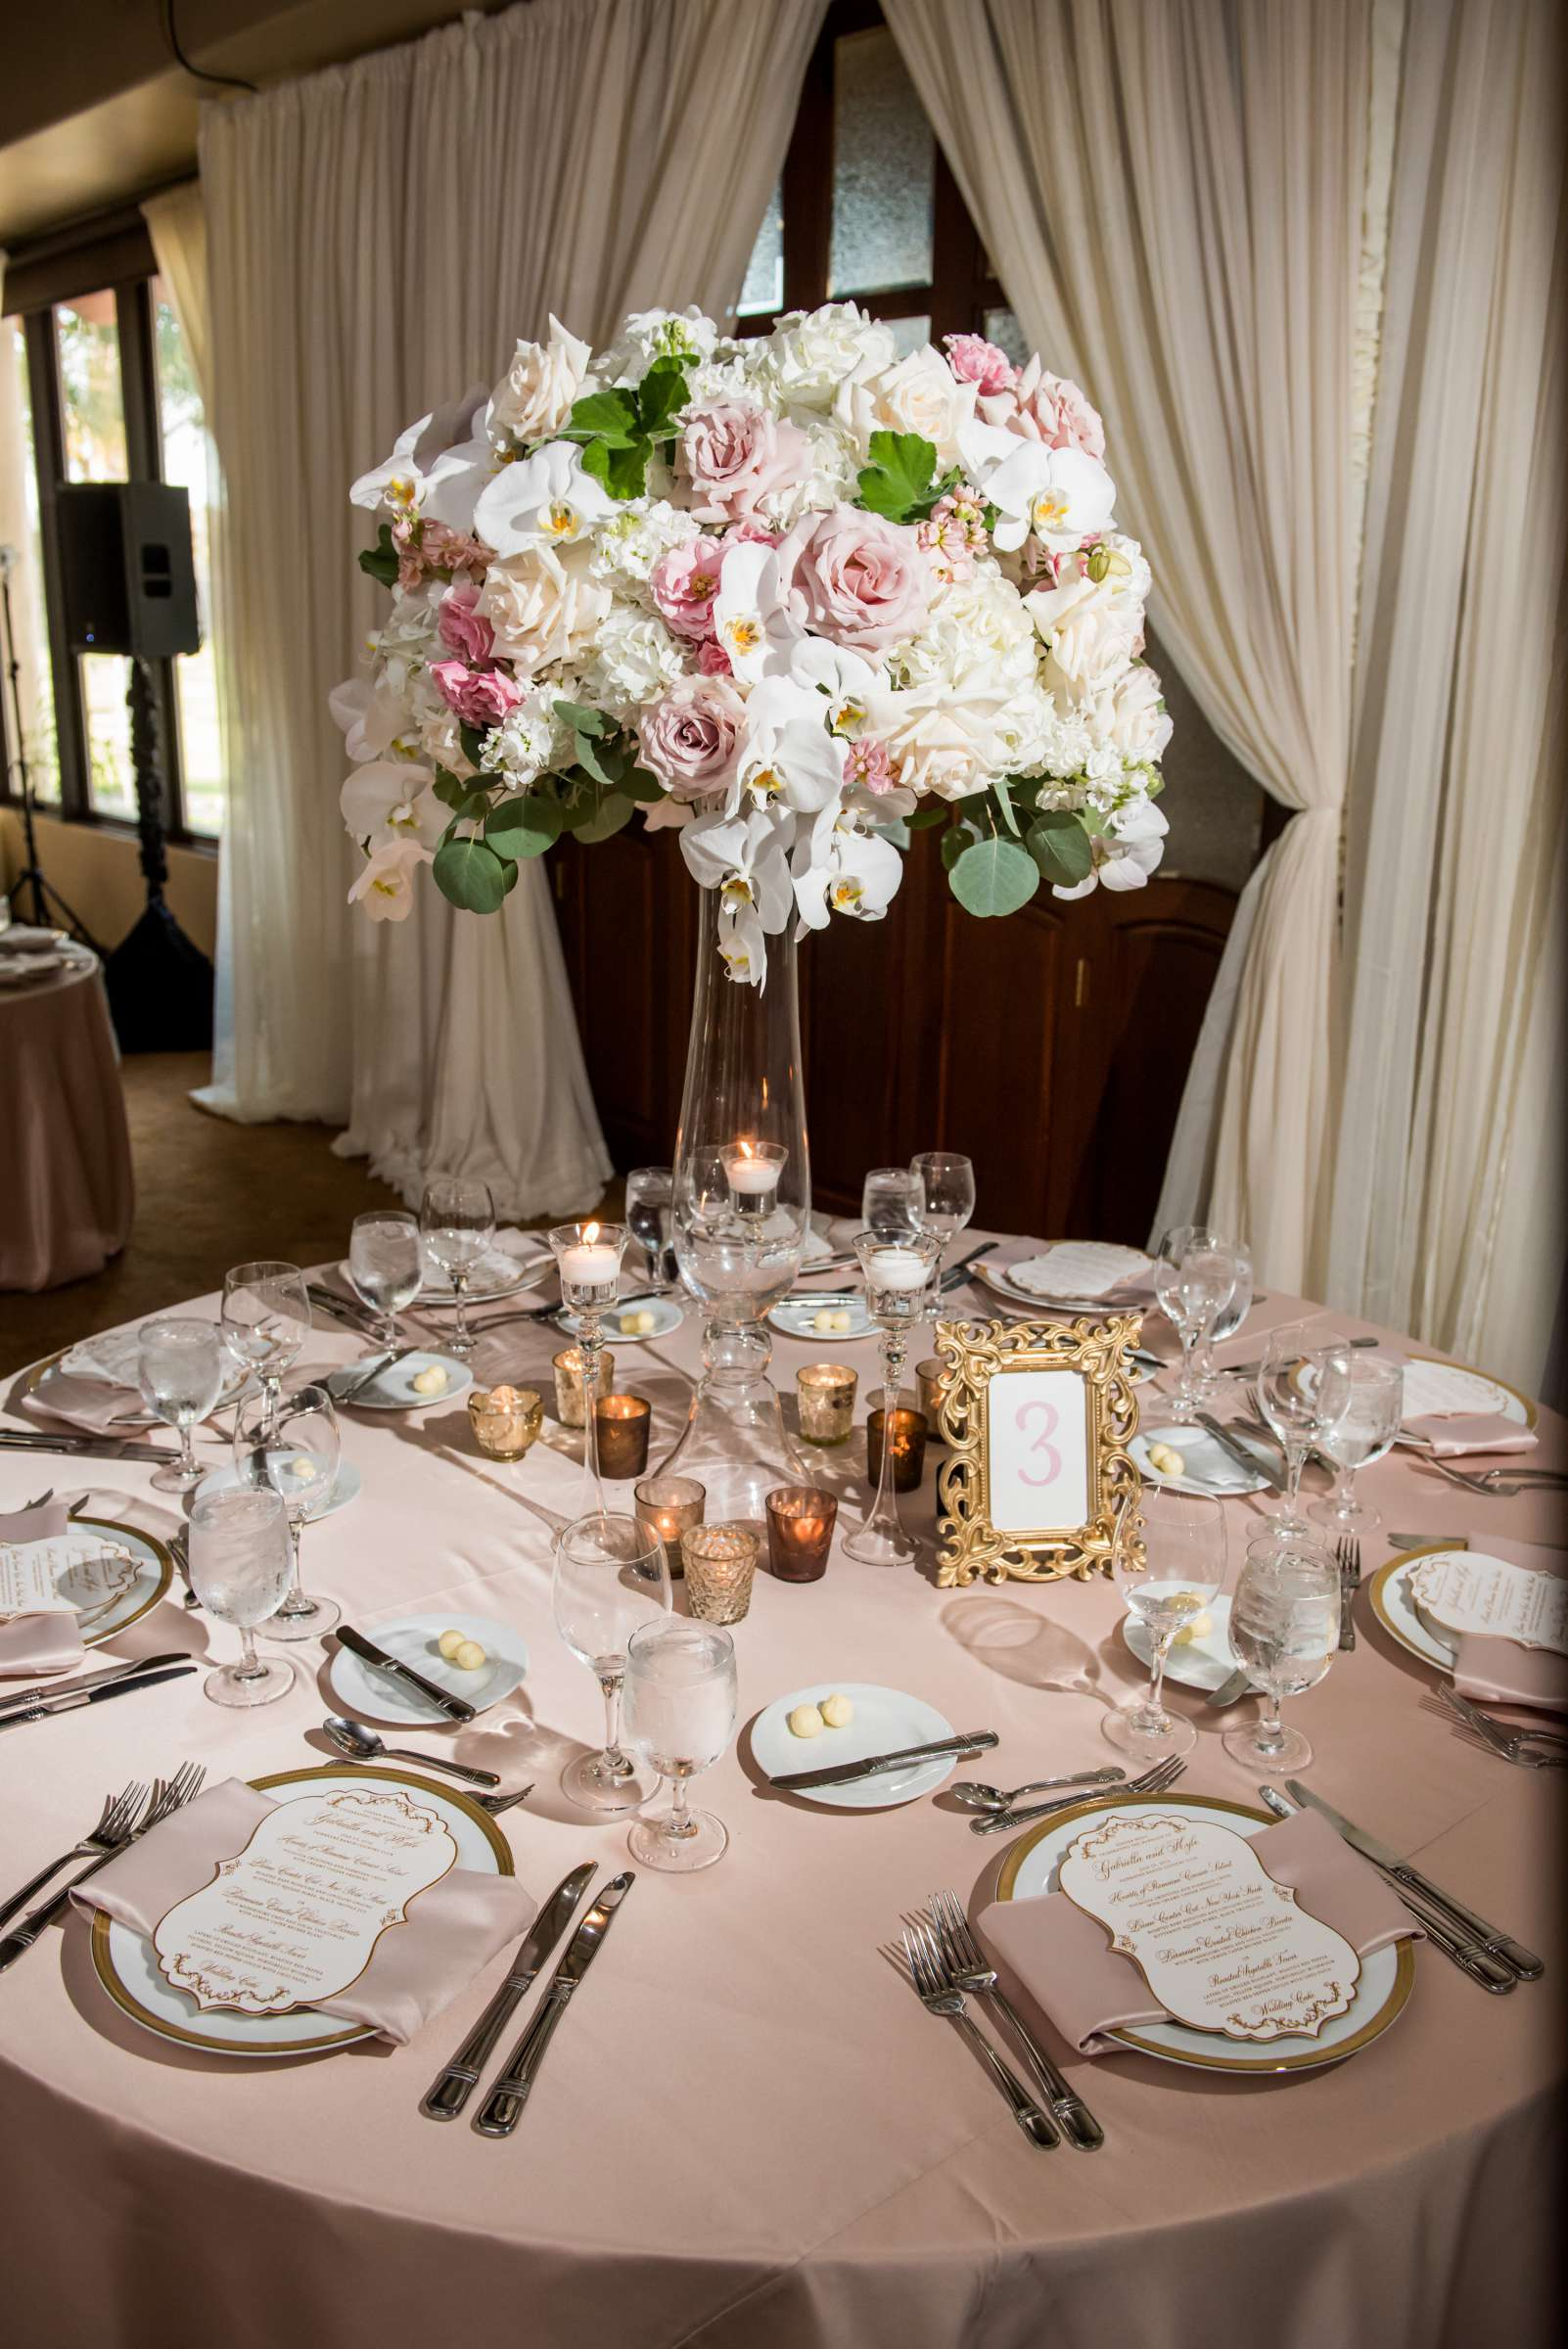 Fairbanks Ranch Country Club Wedding coordinated by Monarch Weddings, Gabriella and Kyle Wedding Photo #193 by True Photography